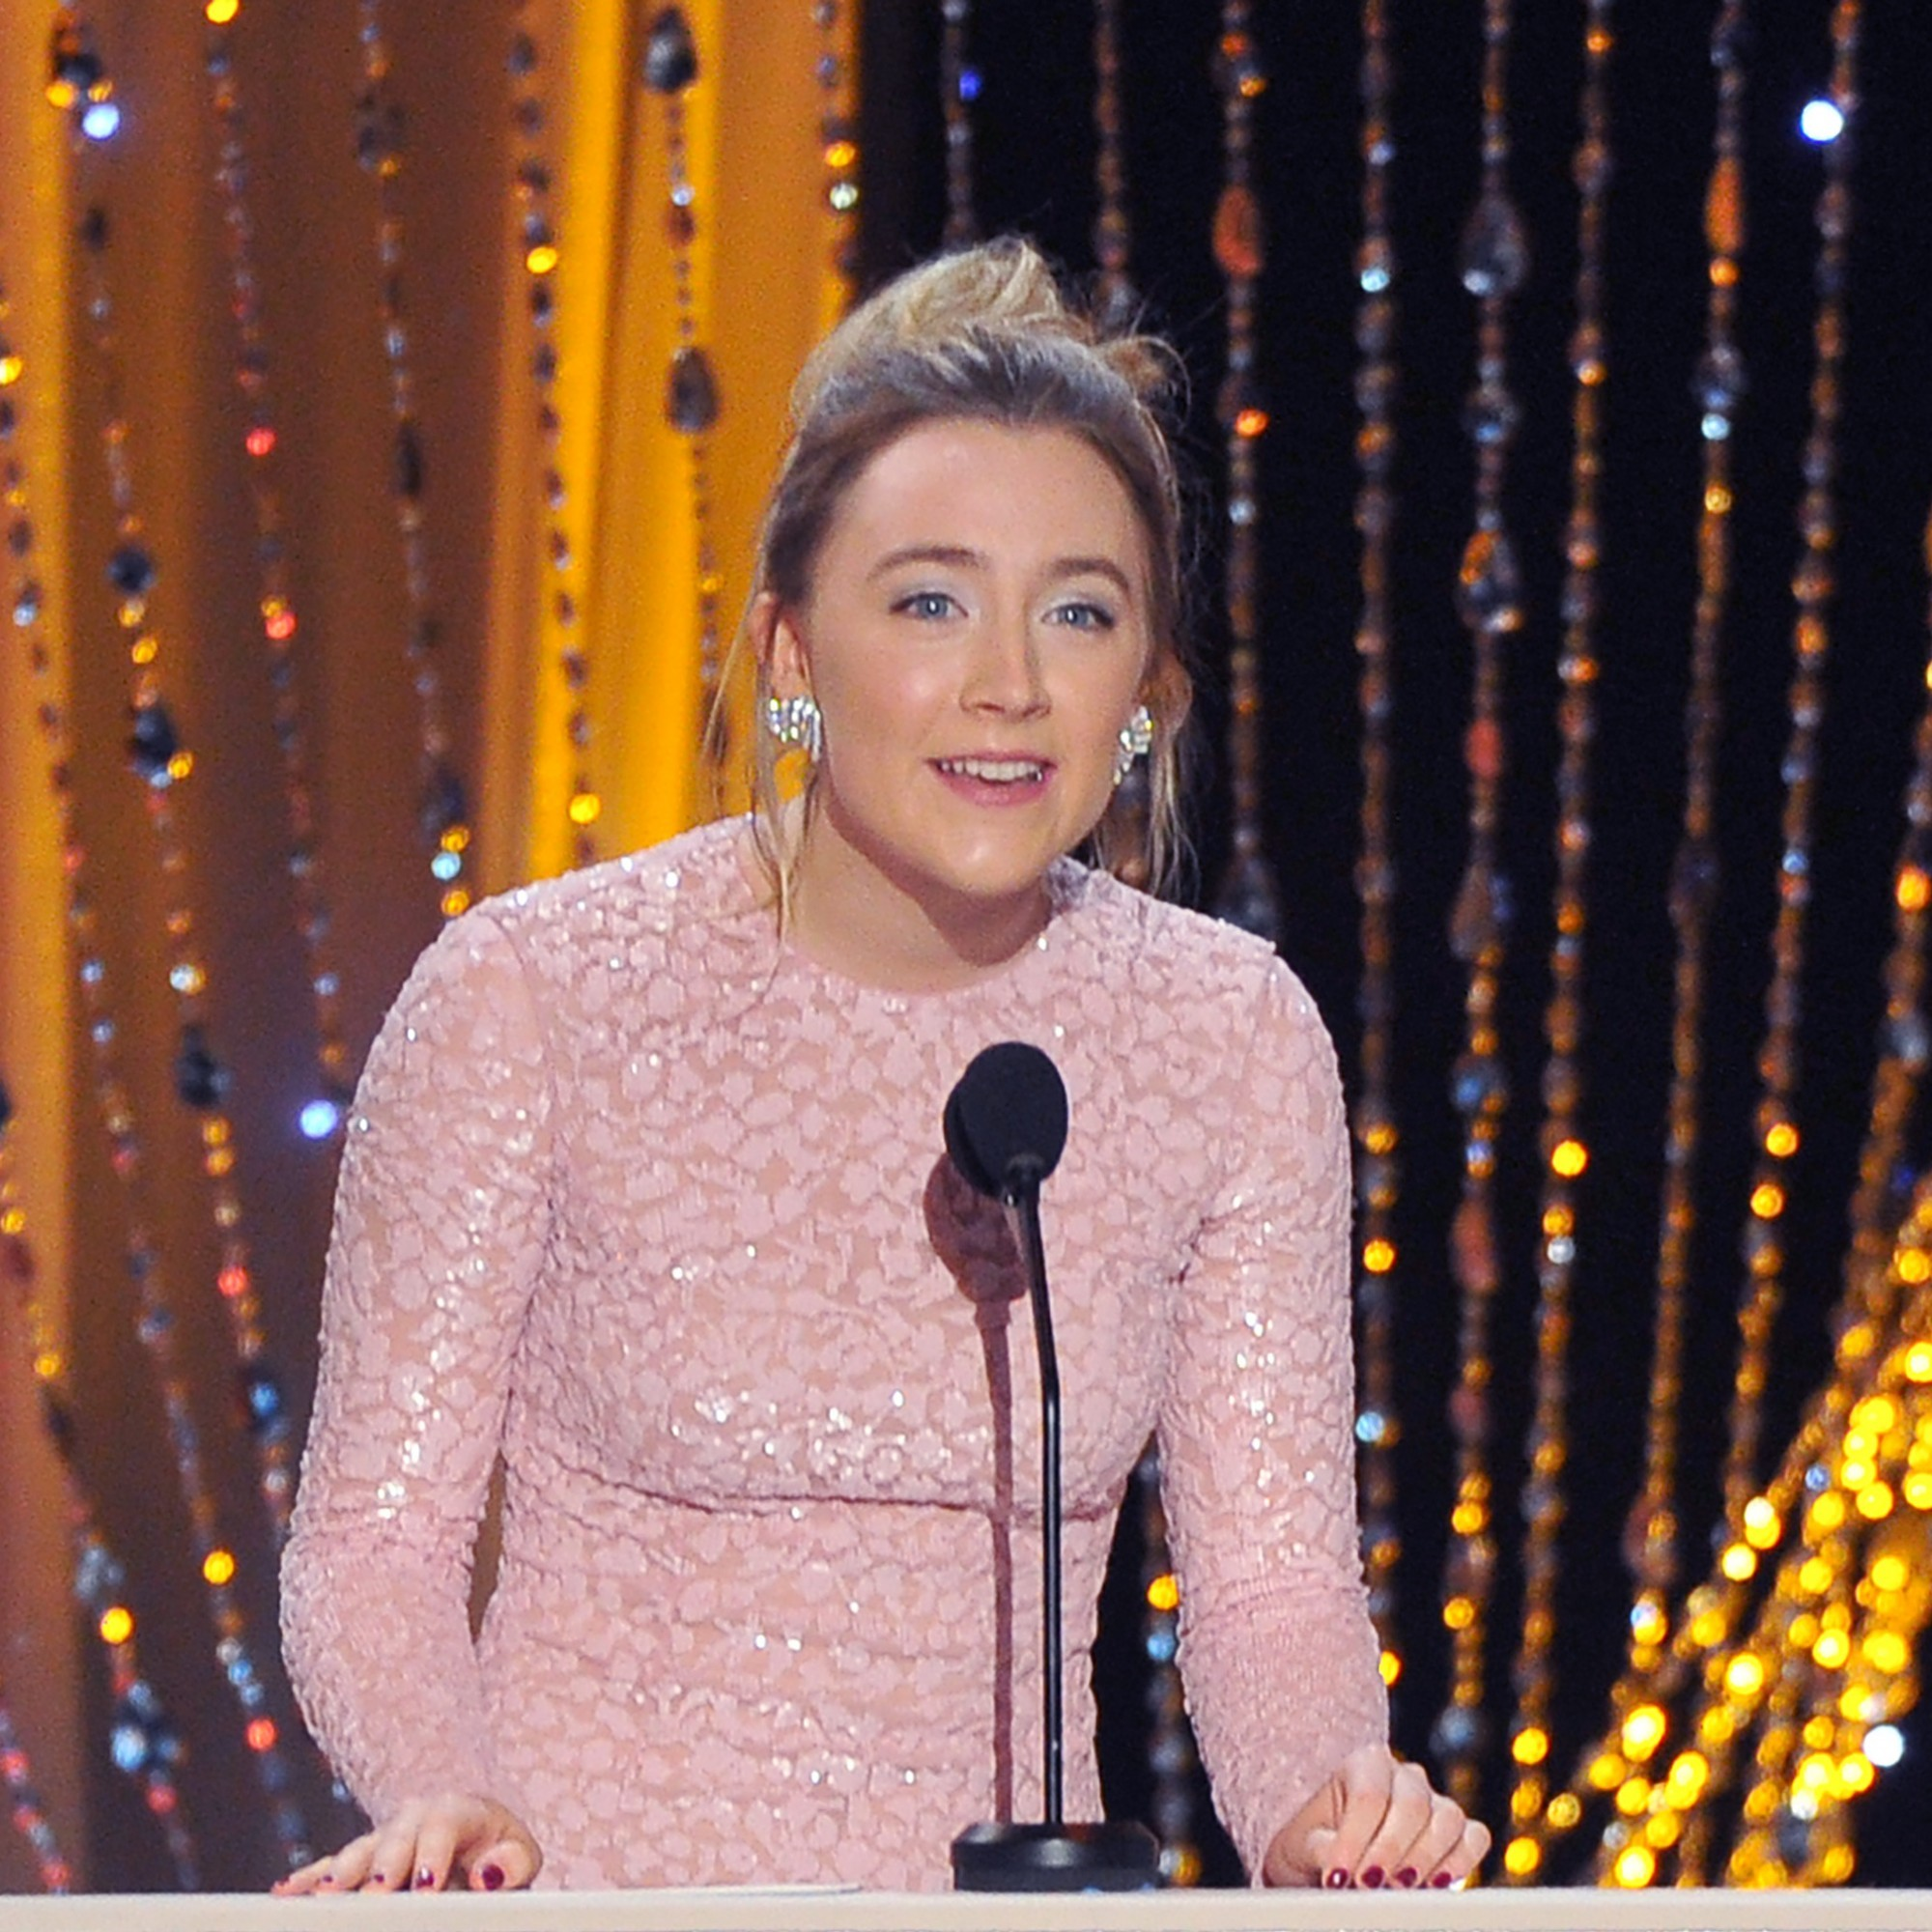 Saoirse Ronan's already booked a hangover day off after the Oscars… It's The Dredge